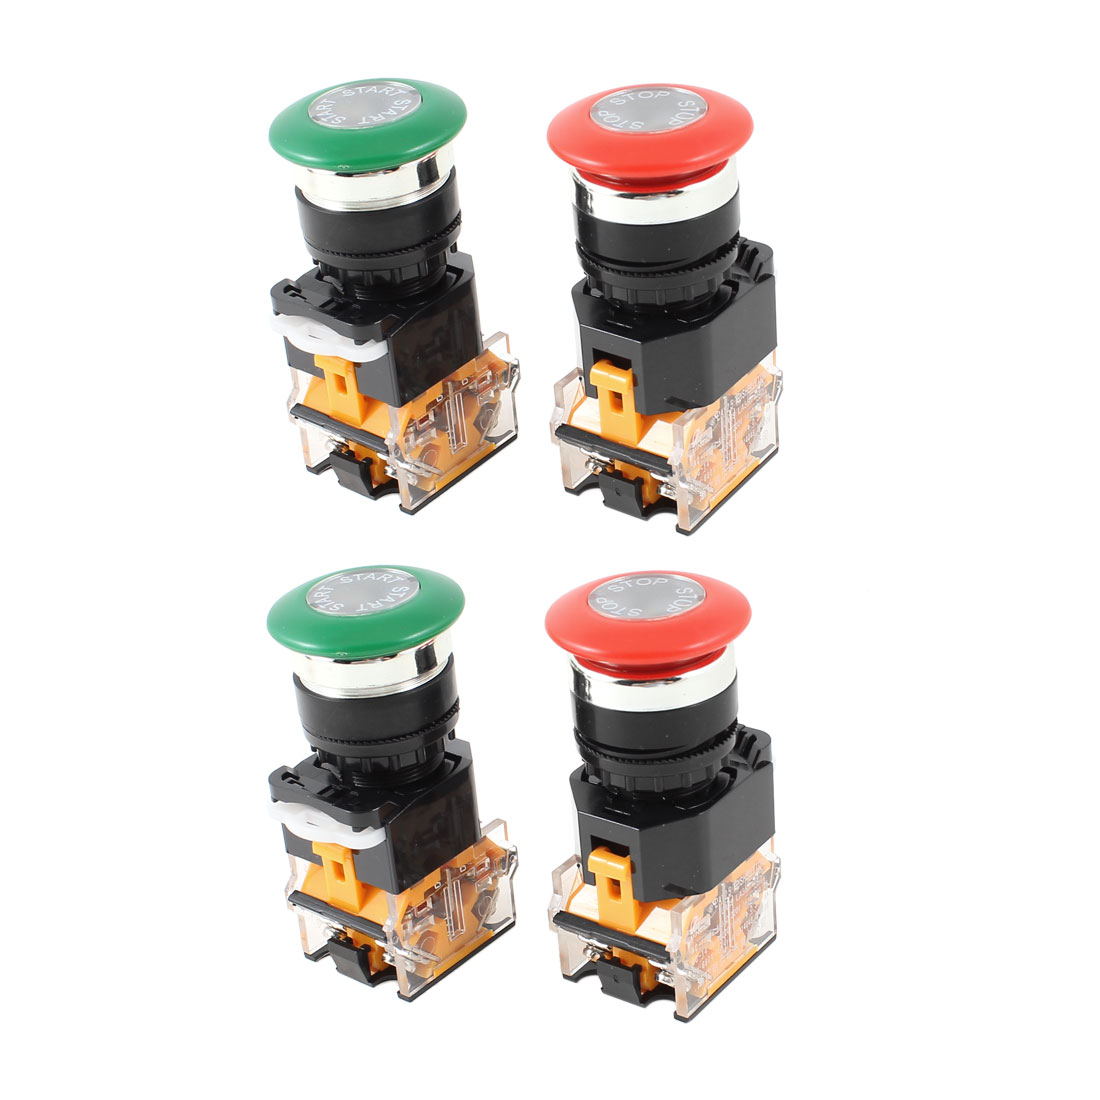 AC 380V 10A DPST Red Green Mushroom Head 4 Screw Terminal Momentary Emergency Stop Pushbutton Switch 4 Pcs